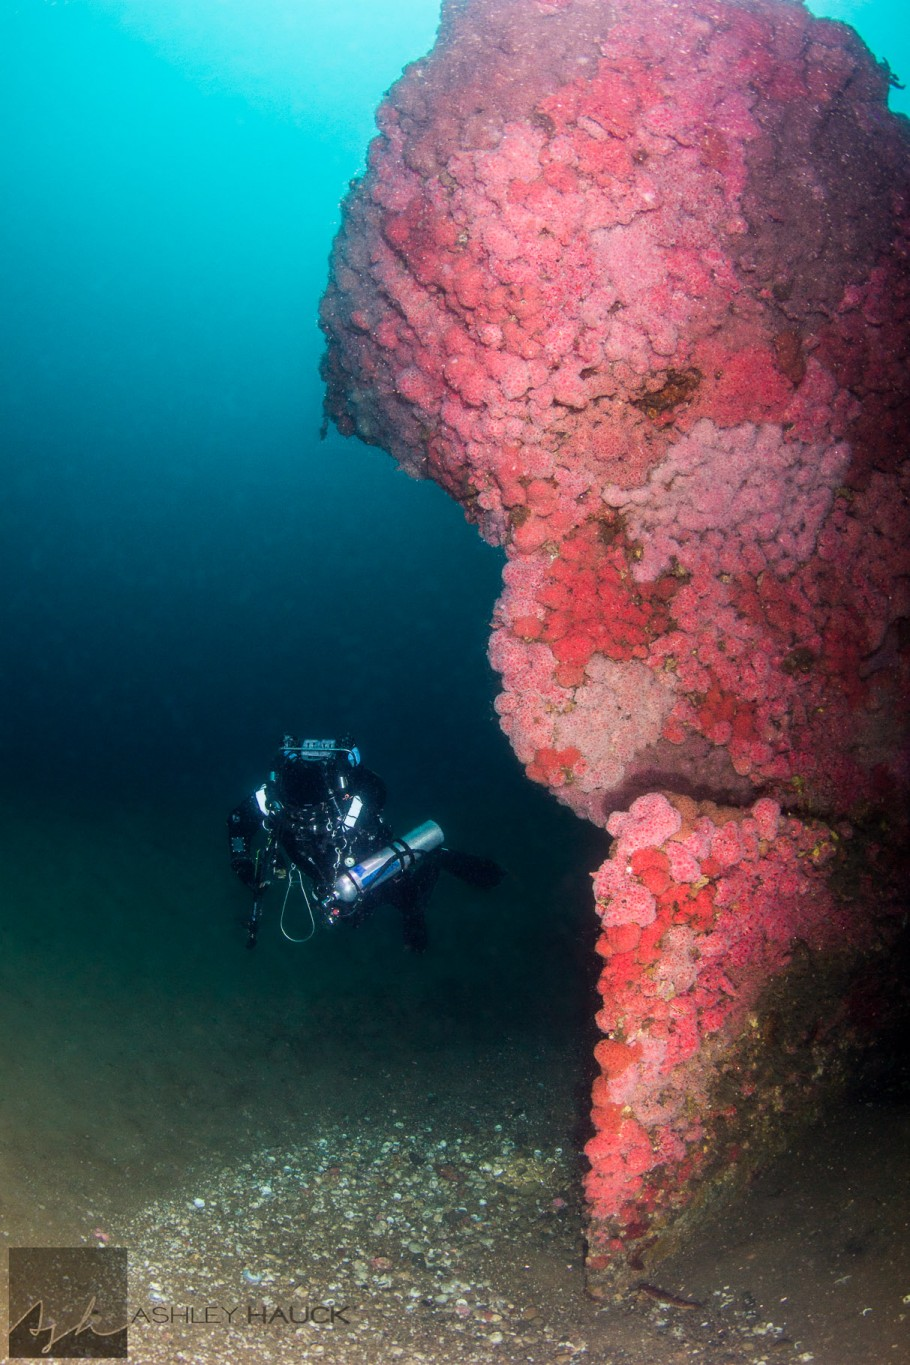 DIver on the Stern of the Hogan Wreck